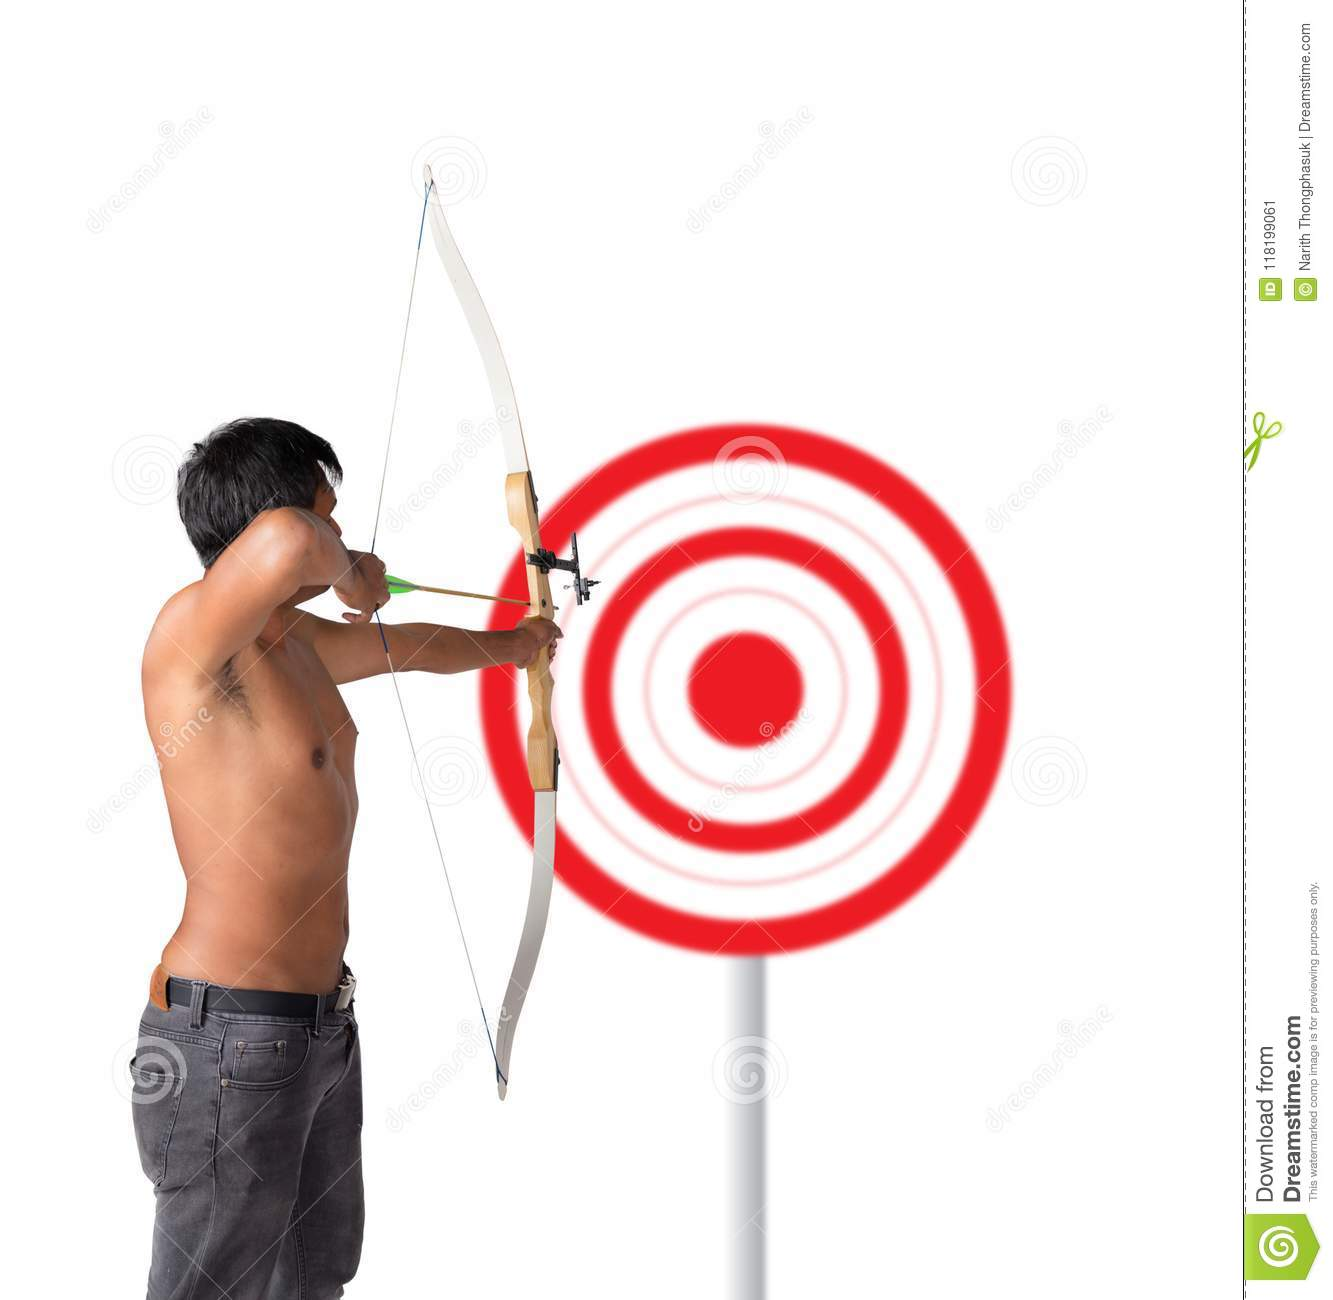 Asian man holding bow and shooting to archery target. Rear view, businessman aiming at target